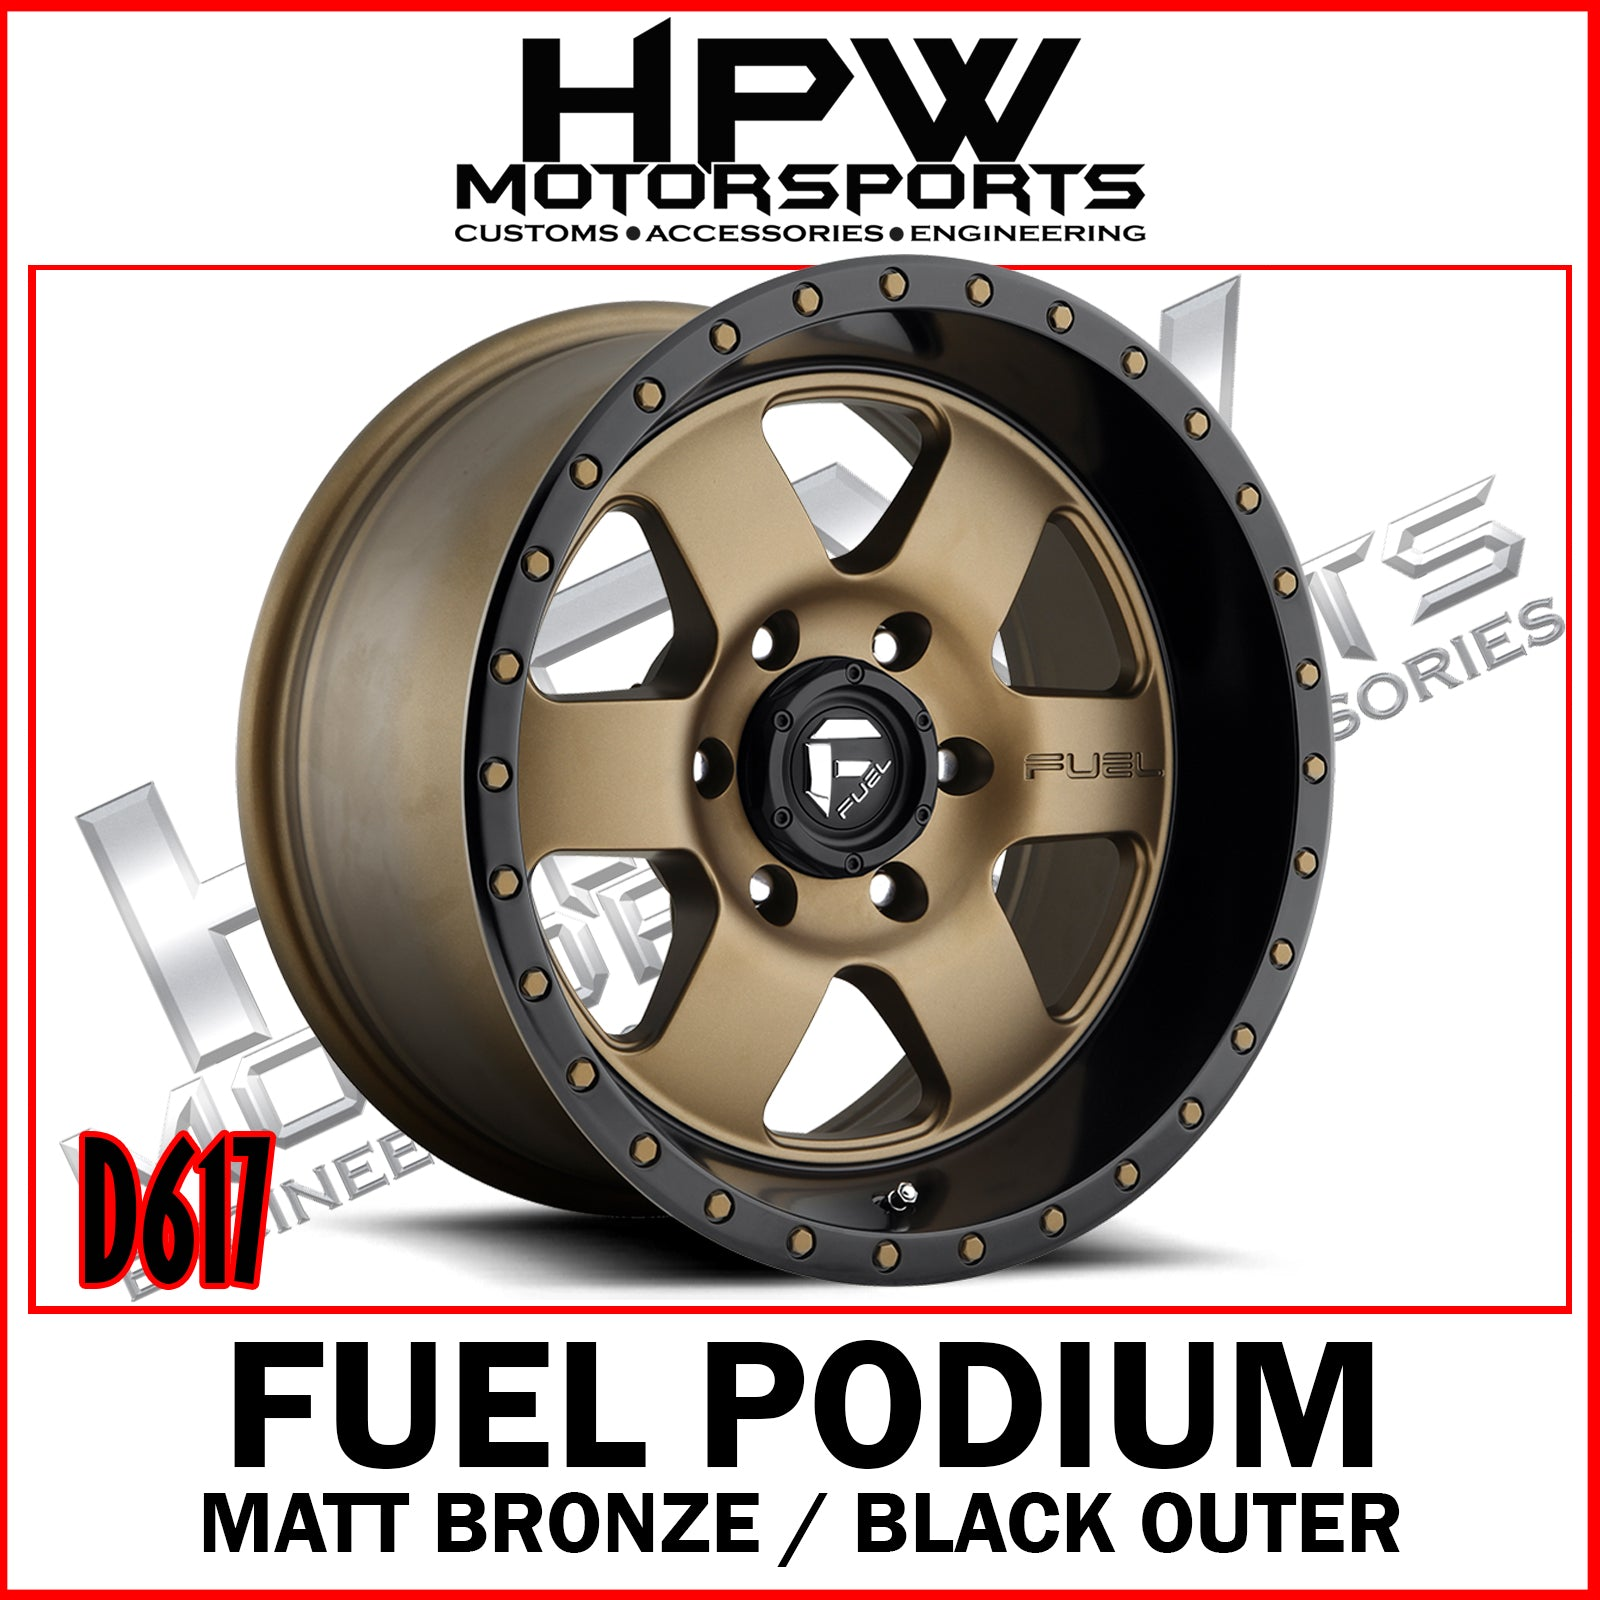 D617 FUEL PODIUM - MATT BRONZE / BLACK OUTER - Set of 4